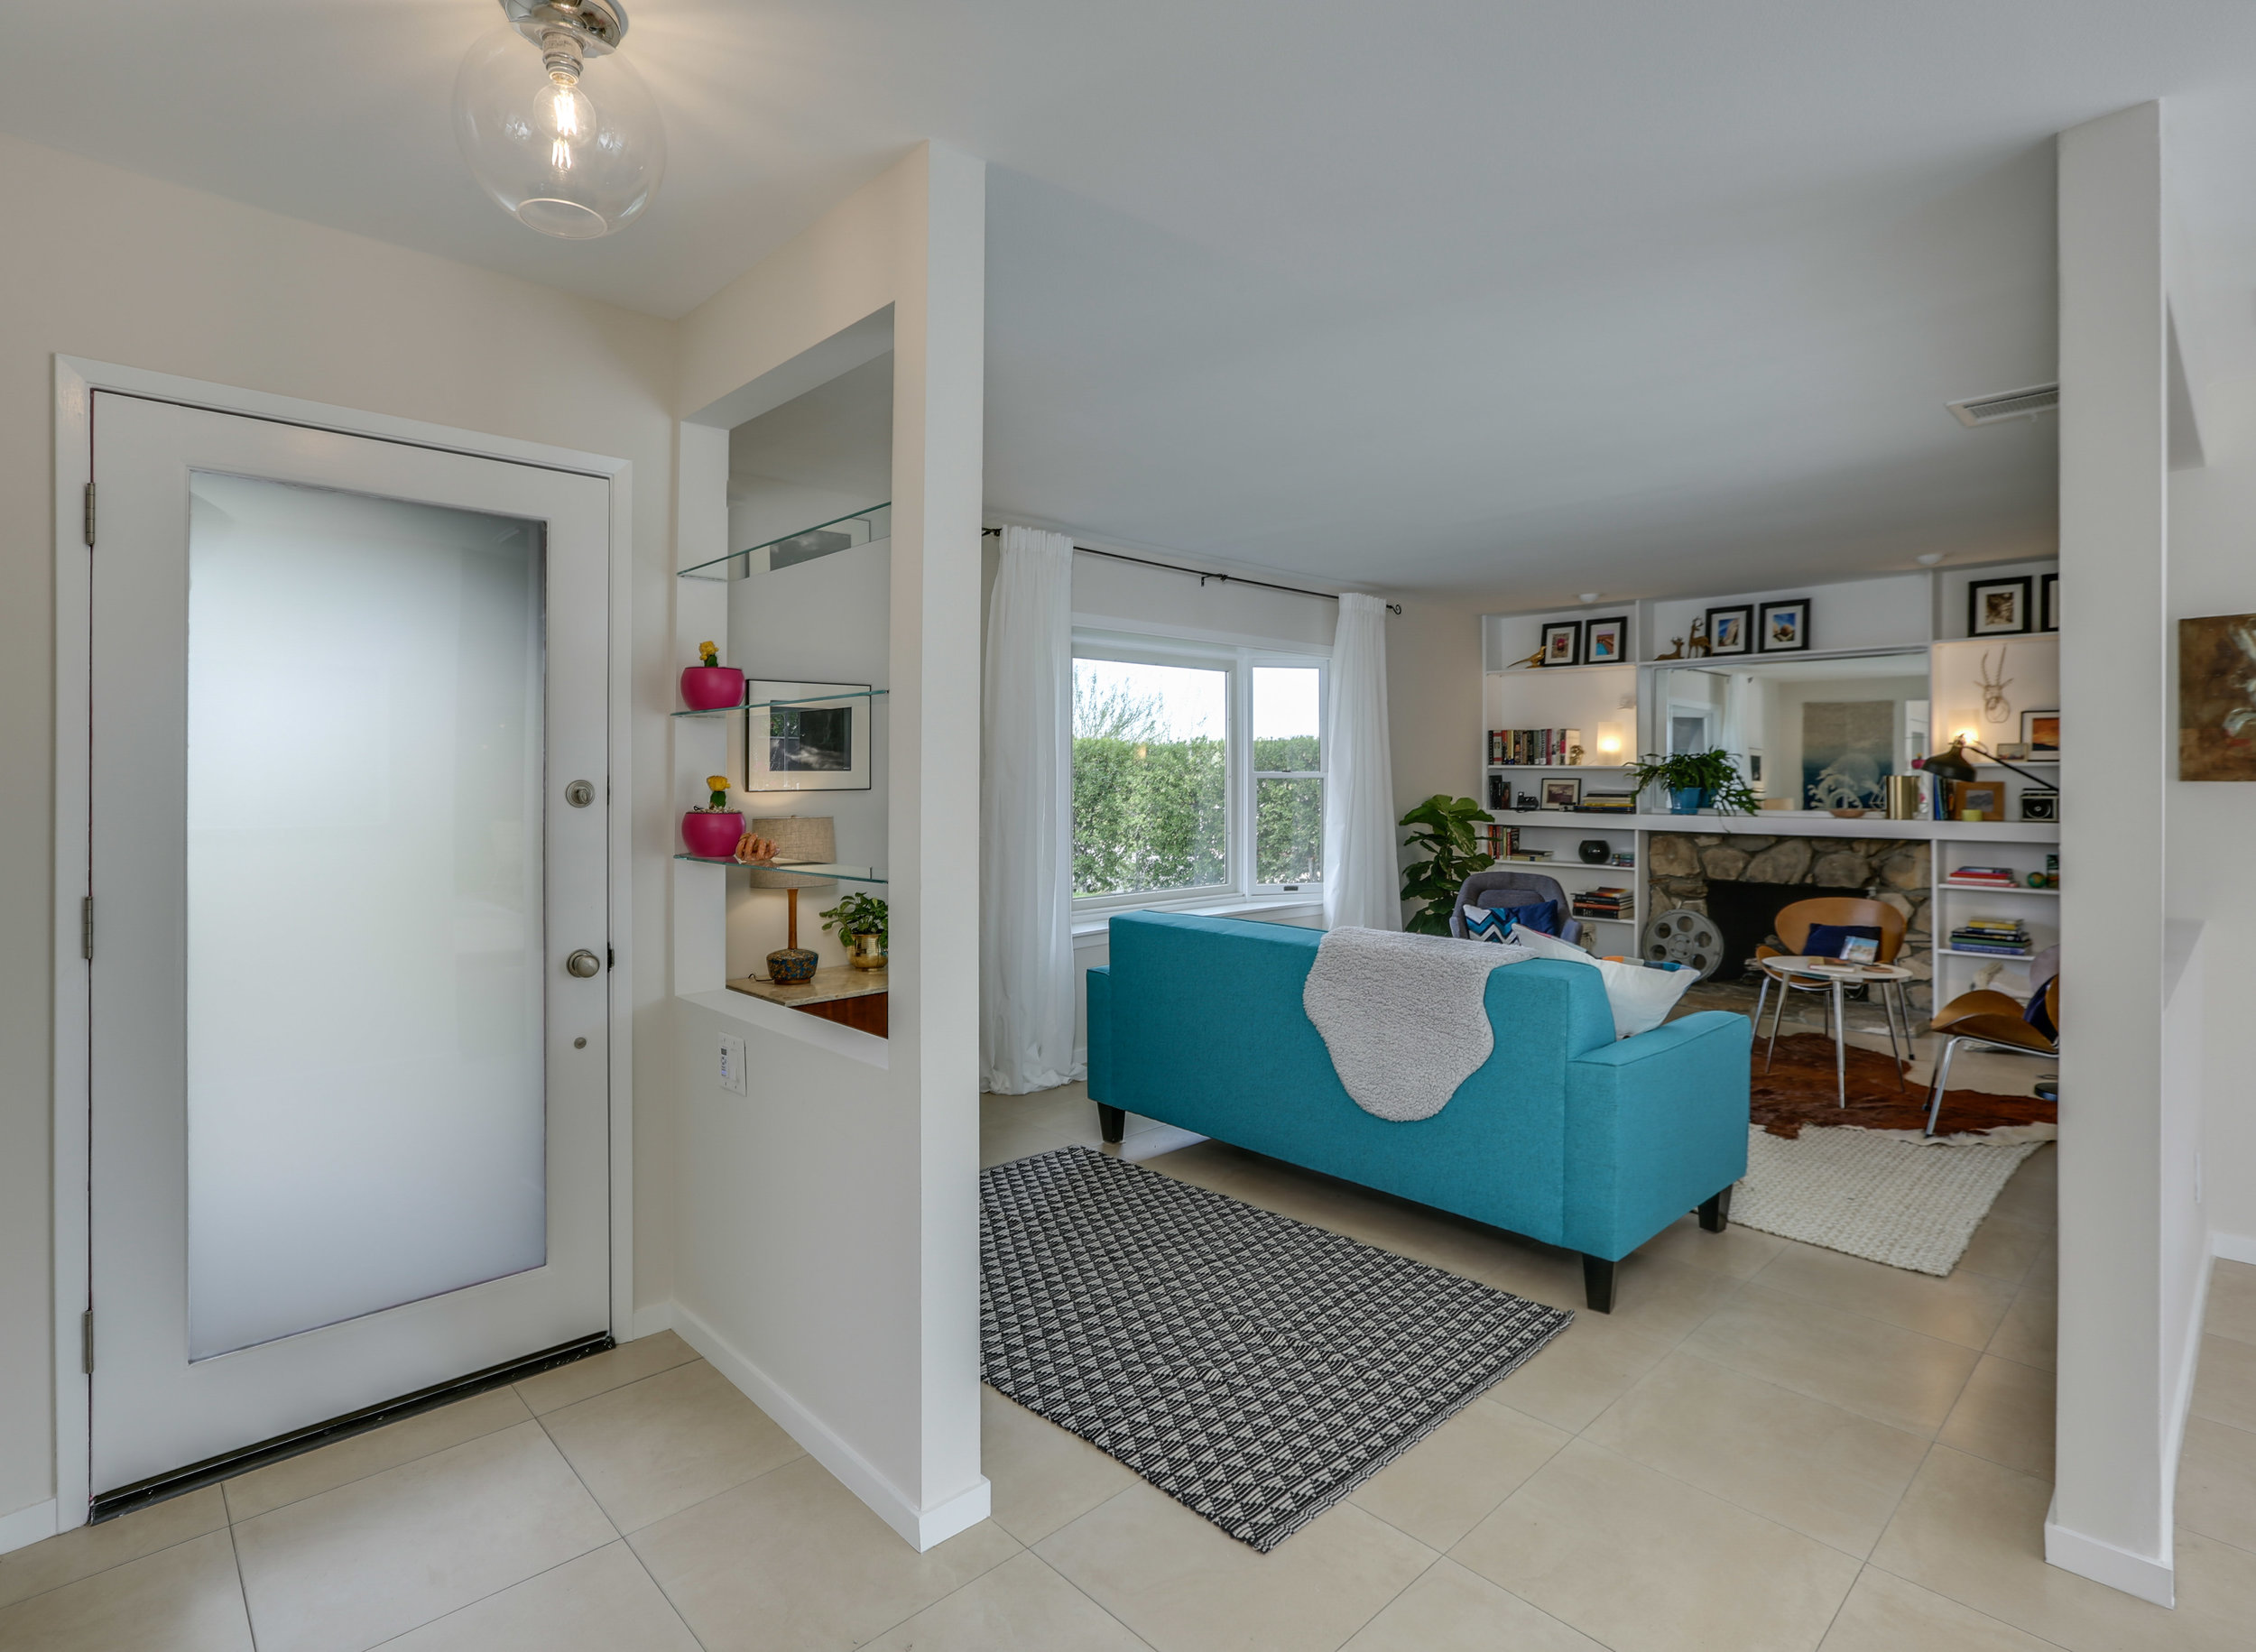 """Freshly painted and """"updated"""" with new lighting, """"cottage cheese"""" removed, and professionally staged. Sold within three days on market for attractive price. Staging by Habitat Staging, SarahAlice Doss."""